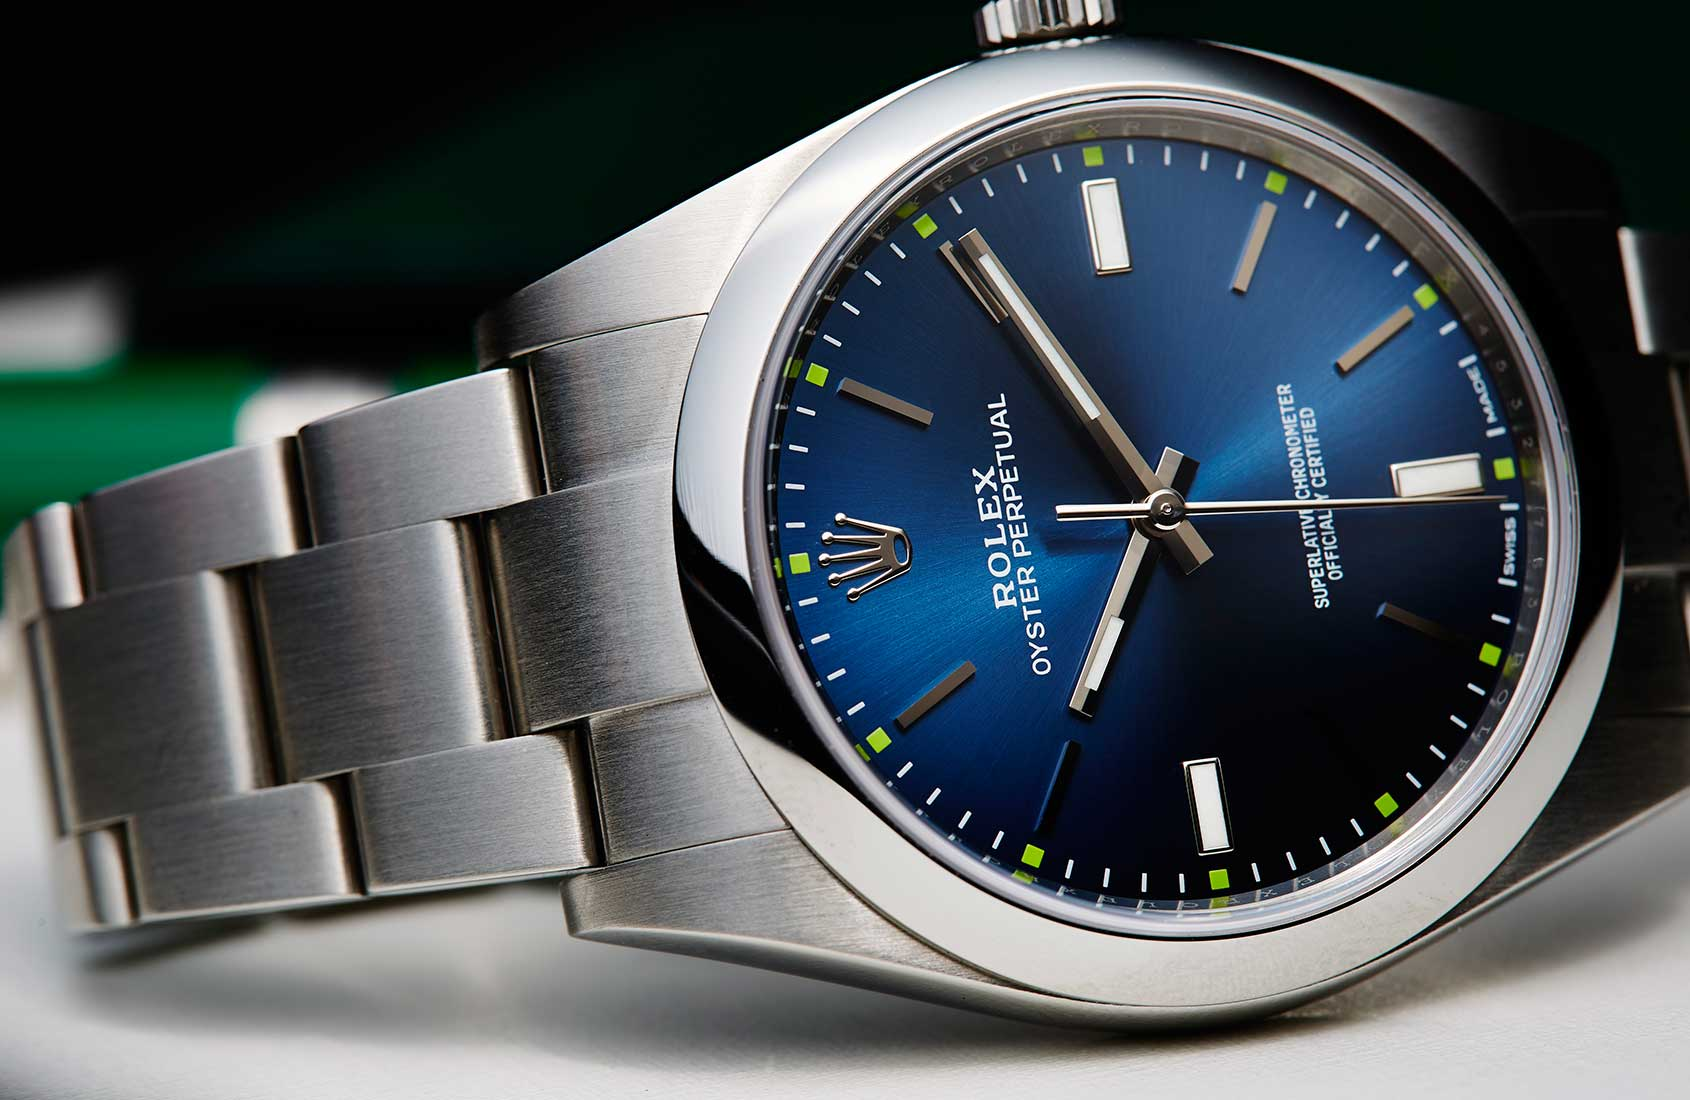 Rolex Oyster Perpetual 39 in blue, grey and grape